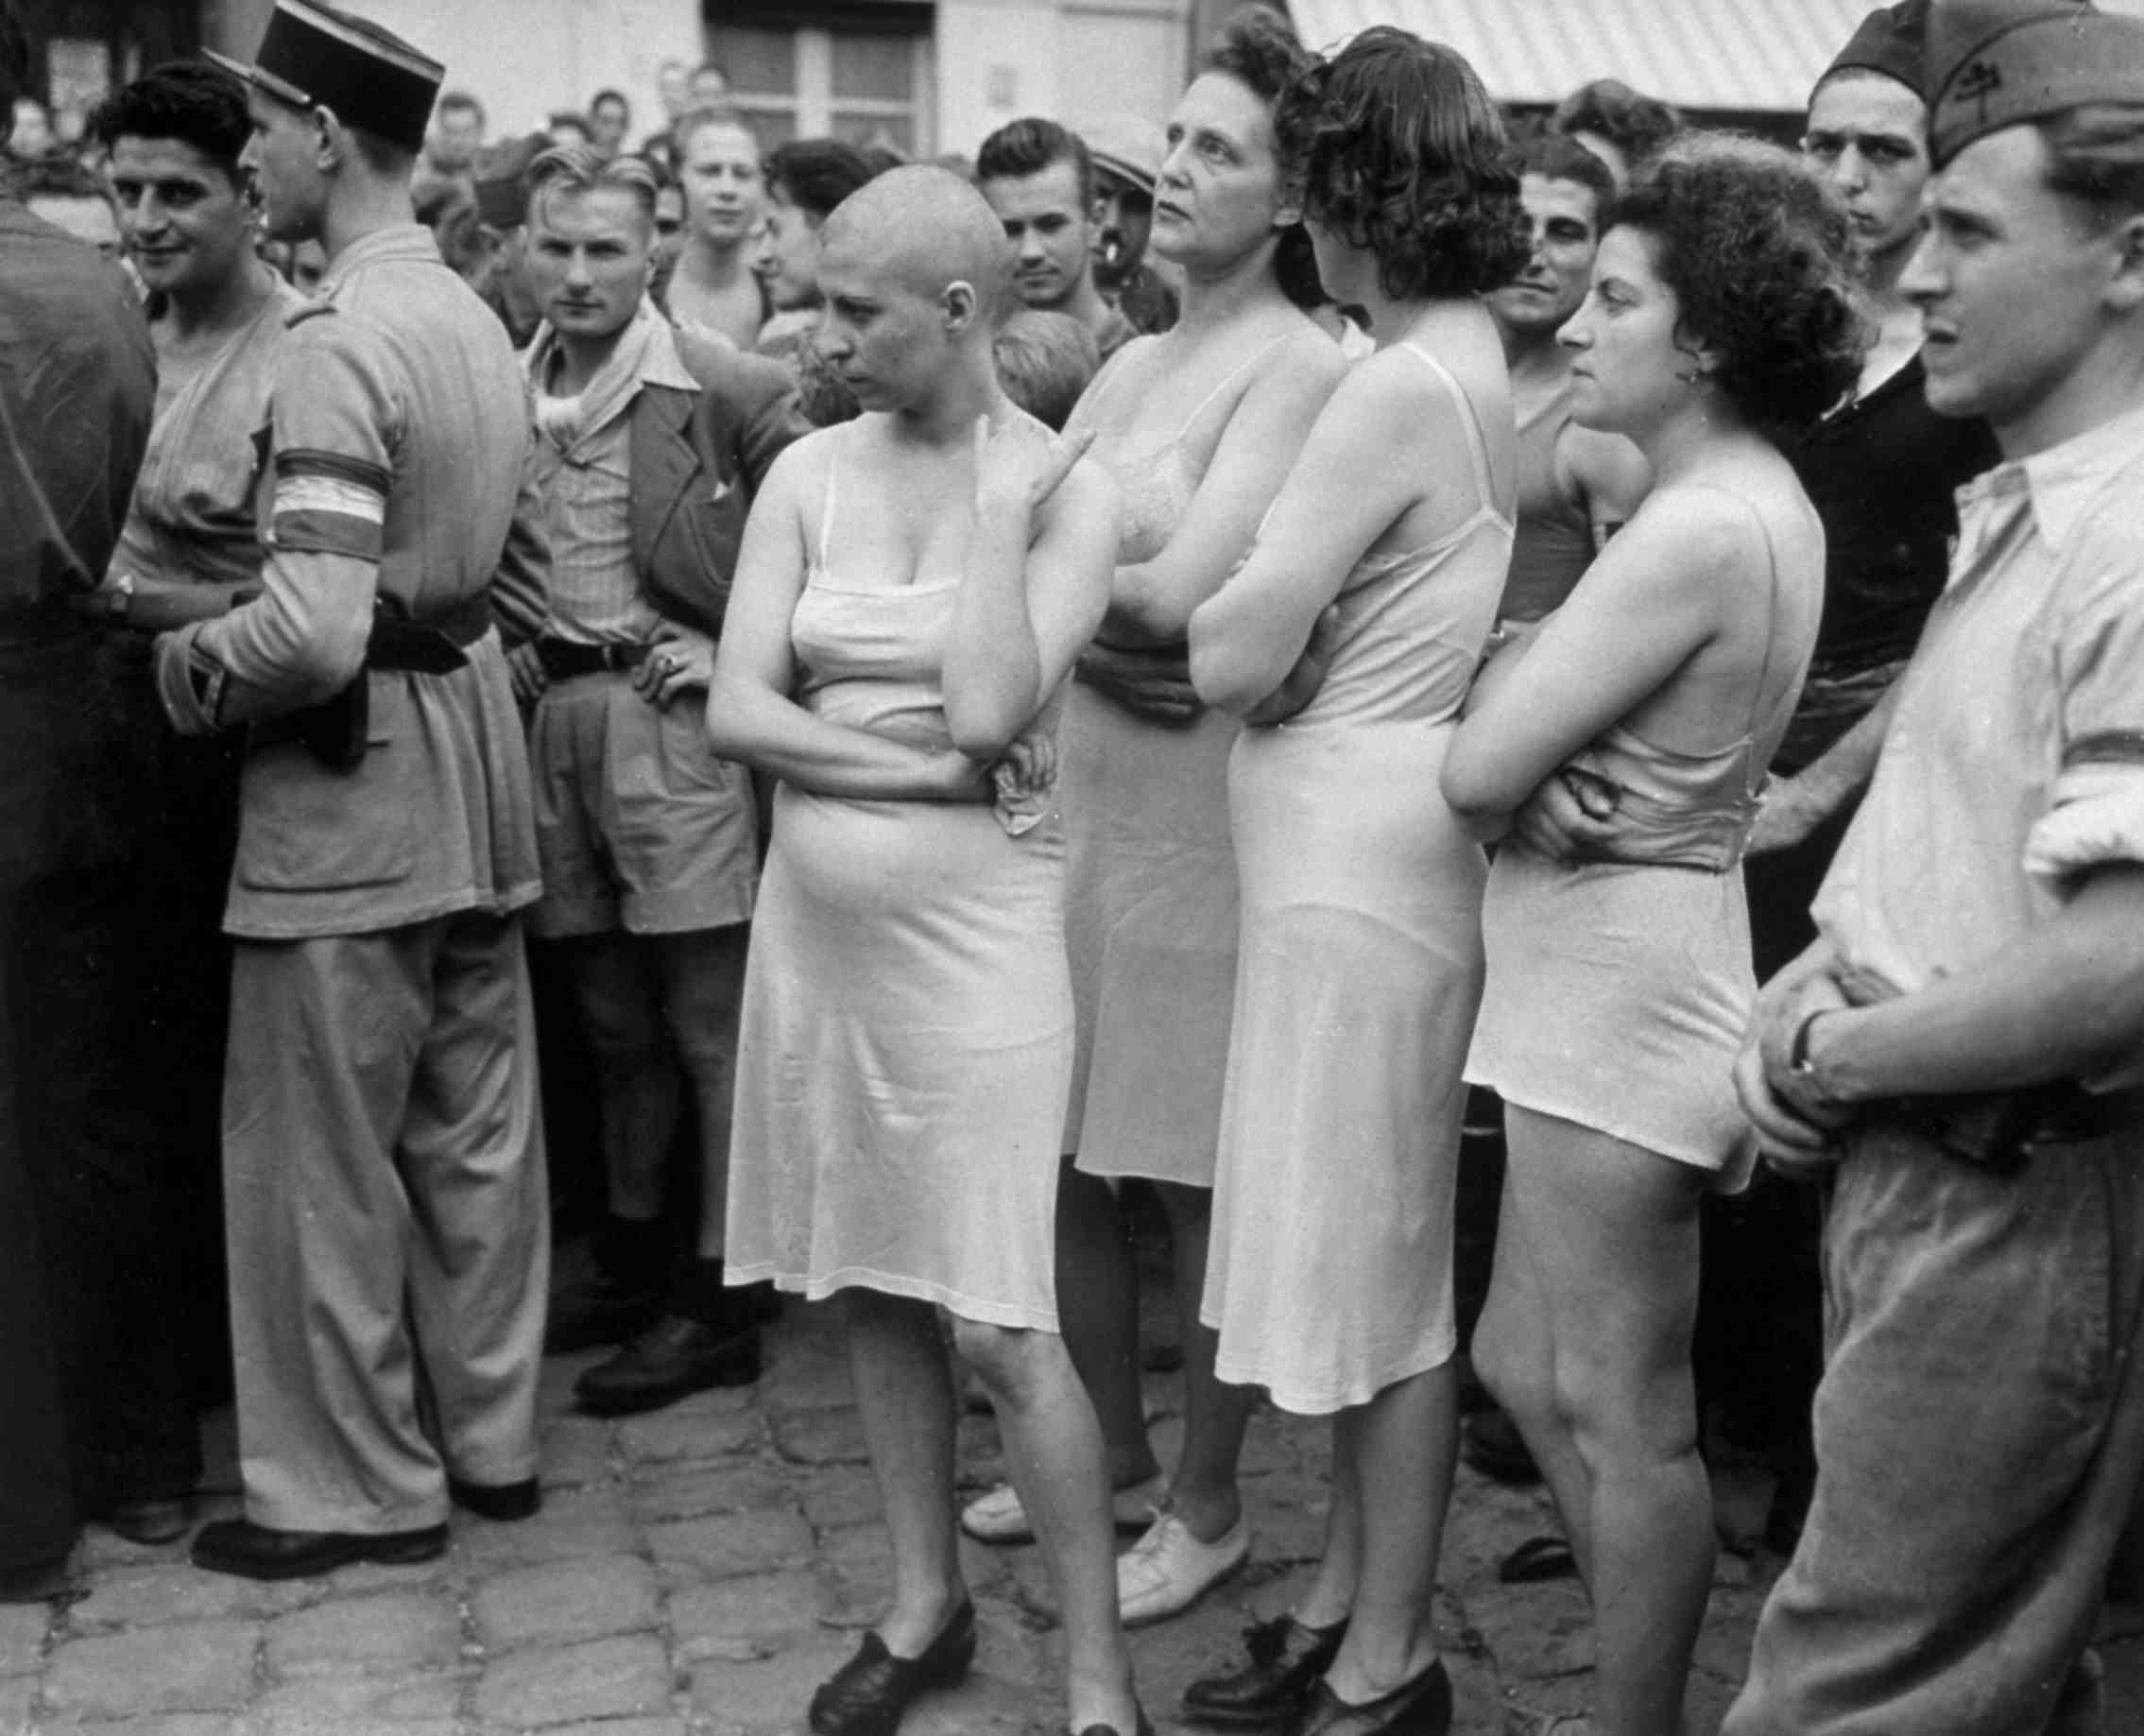 ravensbruck a forgotten horror Ravensbrück was the only nazi concentration camp built for women  troops  liberated it and the horror they found there, captured on film, for ever  not the  only part of the ravensbrück story that was being forgotten so was.